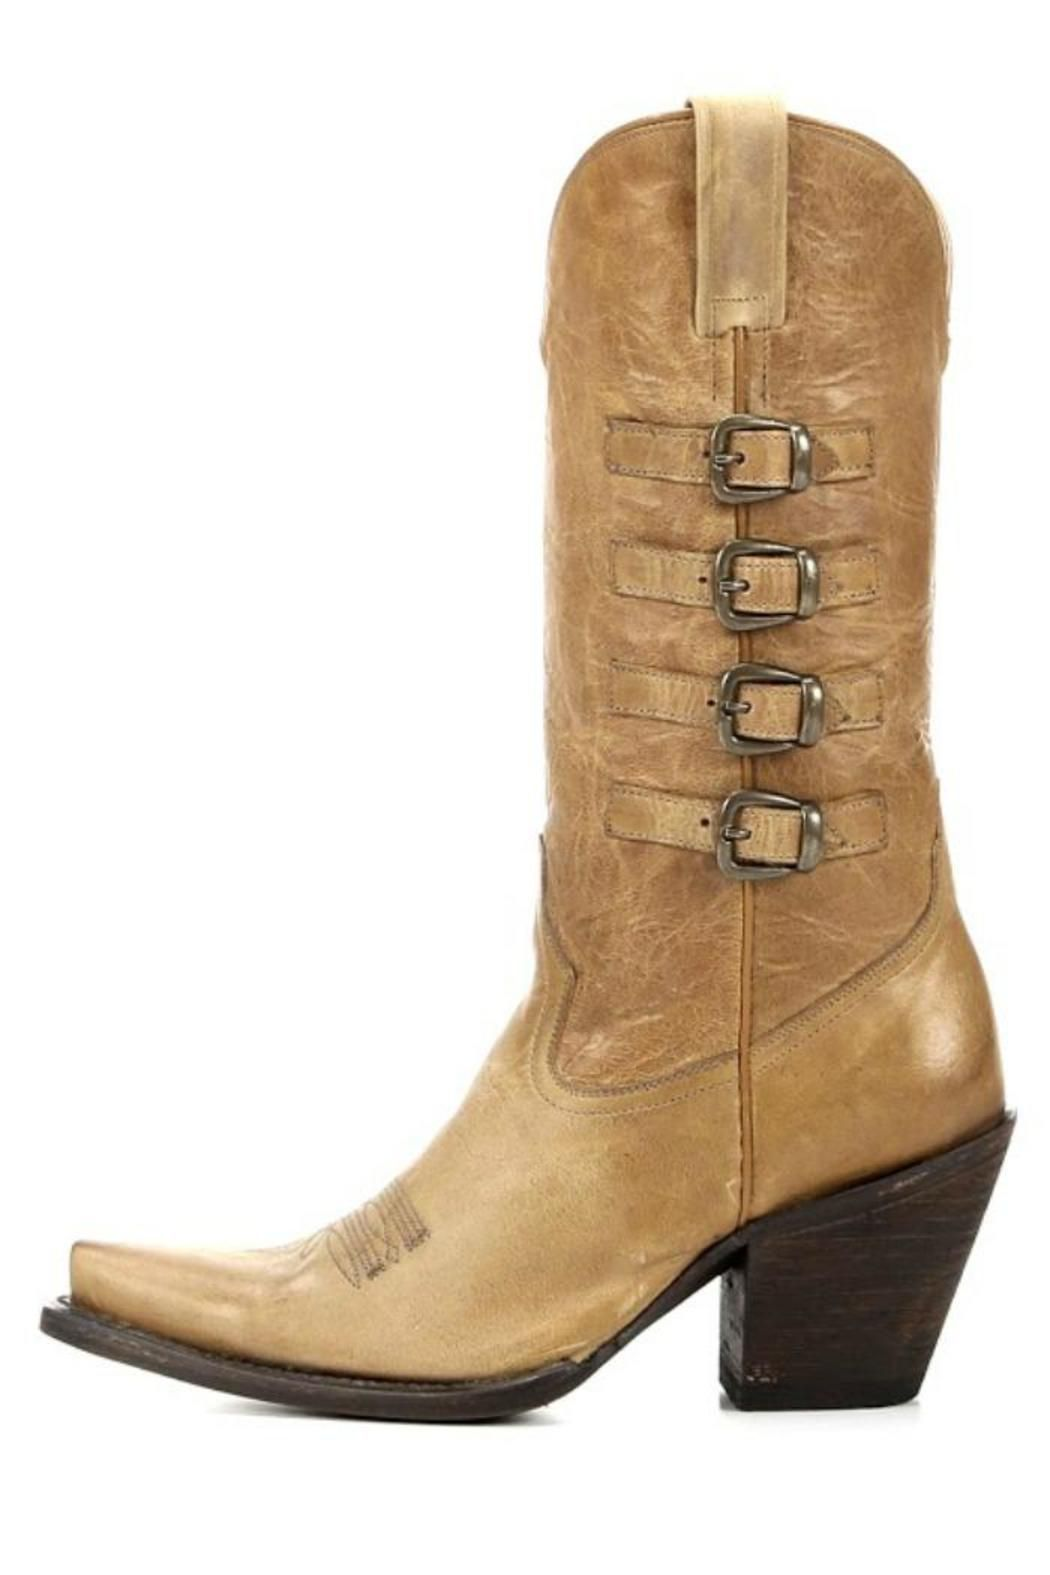 """Four side buckles, distressed tan leather and a tall fashion heel. The Vivienne Buckle Boot easily adds depth to your style and pairs nicely with most outfits. Shaft Height: 11 1/2""""Toe: Snip Heel Height: 3 1/4""""Cushion Insole Leather Outsole Goodyear Welt Construction Shaft Circumference: 13""""on size 7 (measurement varies by size)   Vivienne Buckle Boot by American Rebel Boot Company. Shoes - Boots Ohio"""